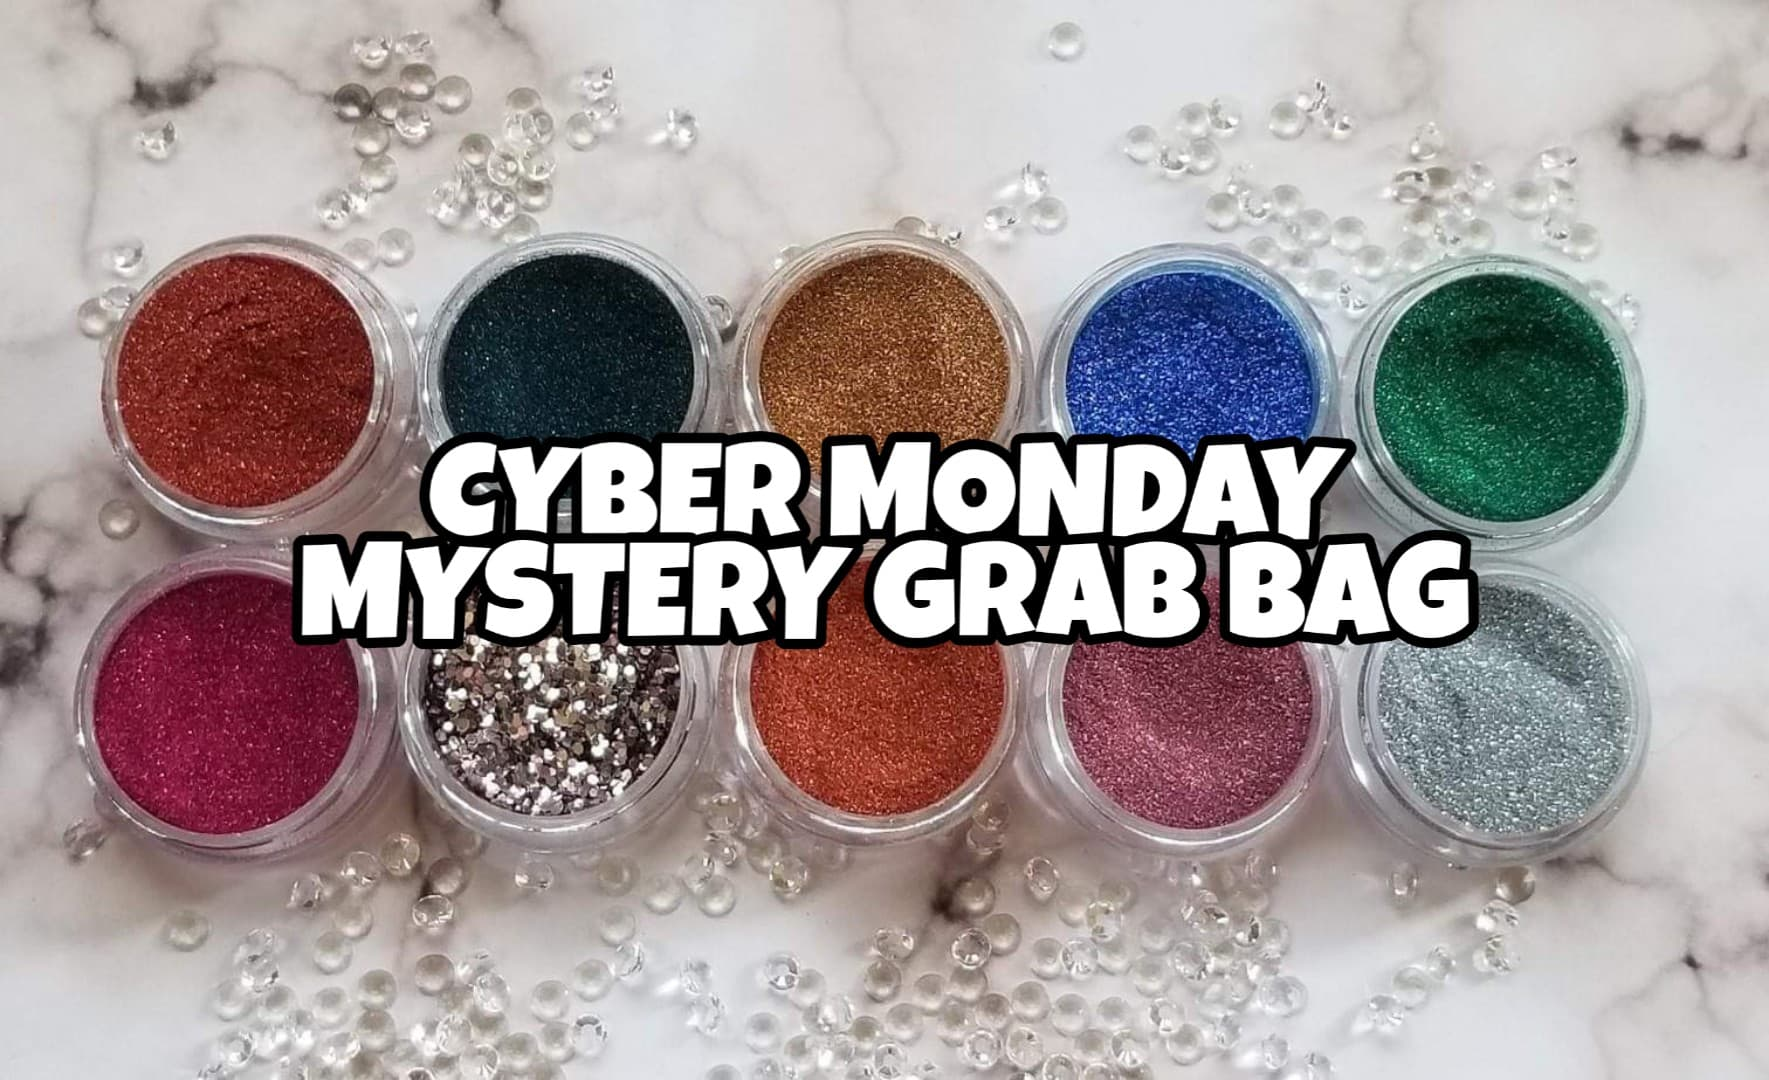 Cyber Monday Mystery Grab Bag - Shade Beauty